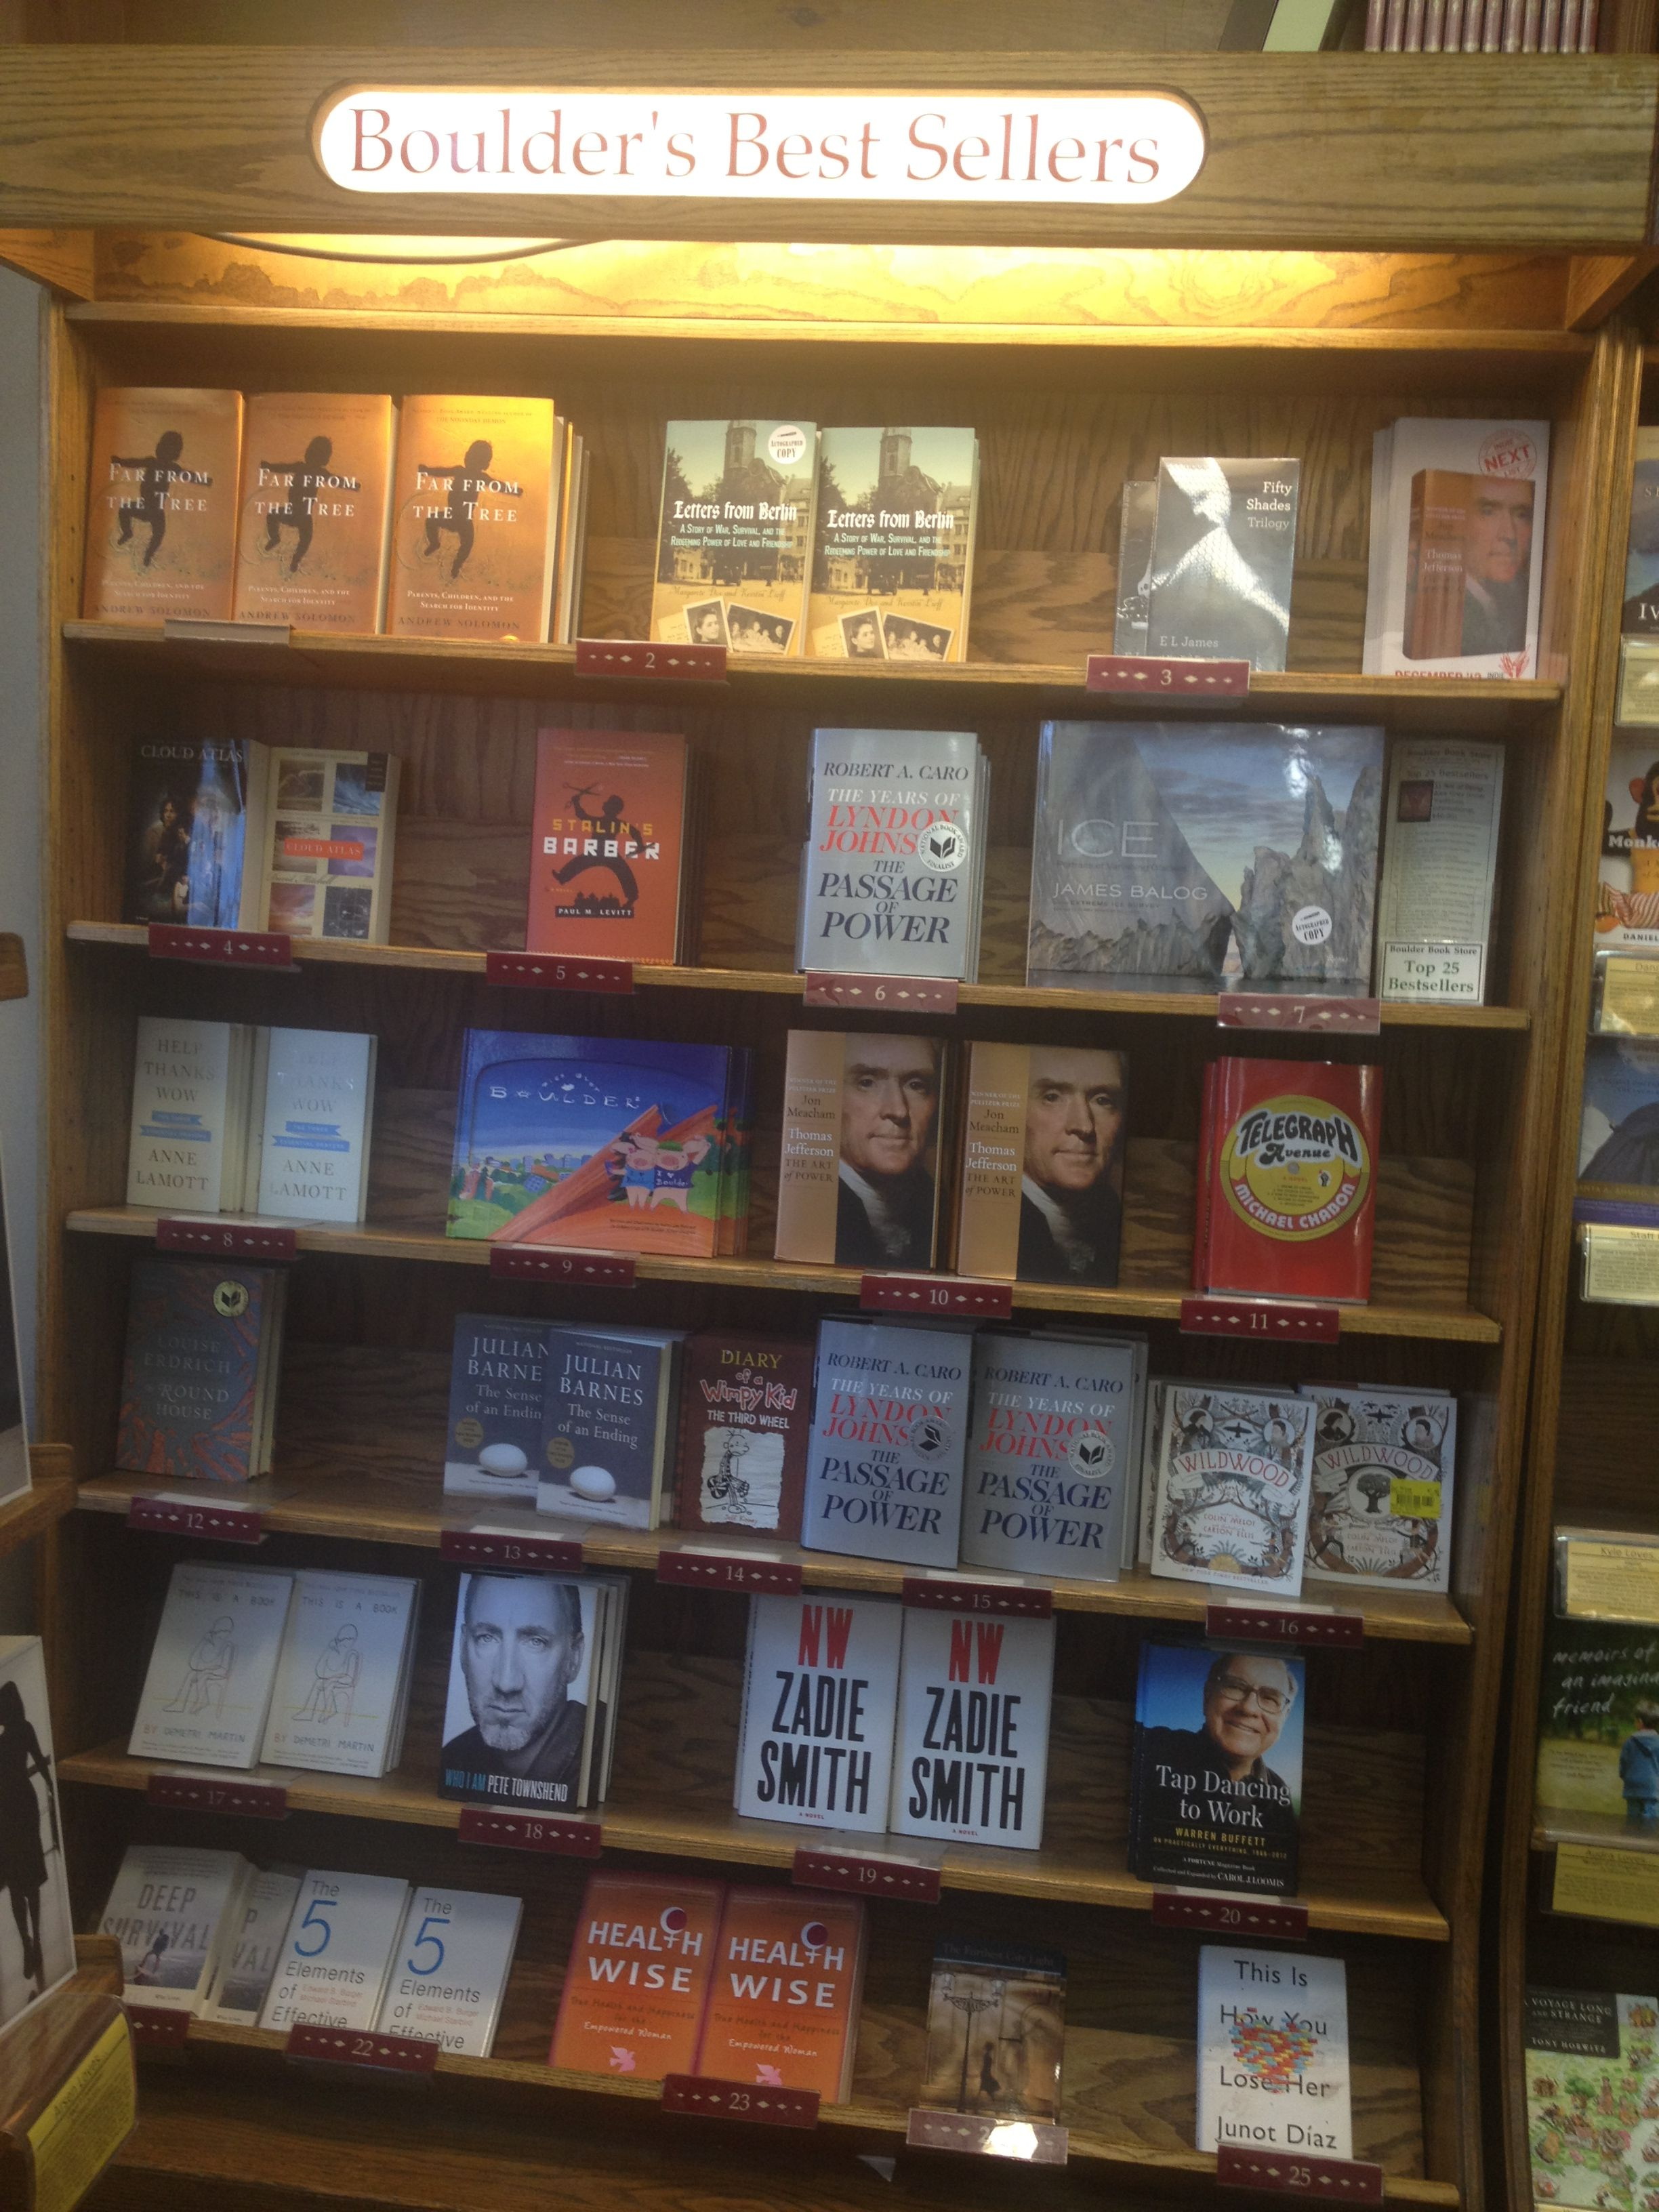 At the Boulder Book Store